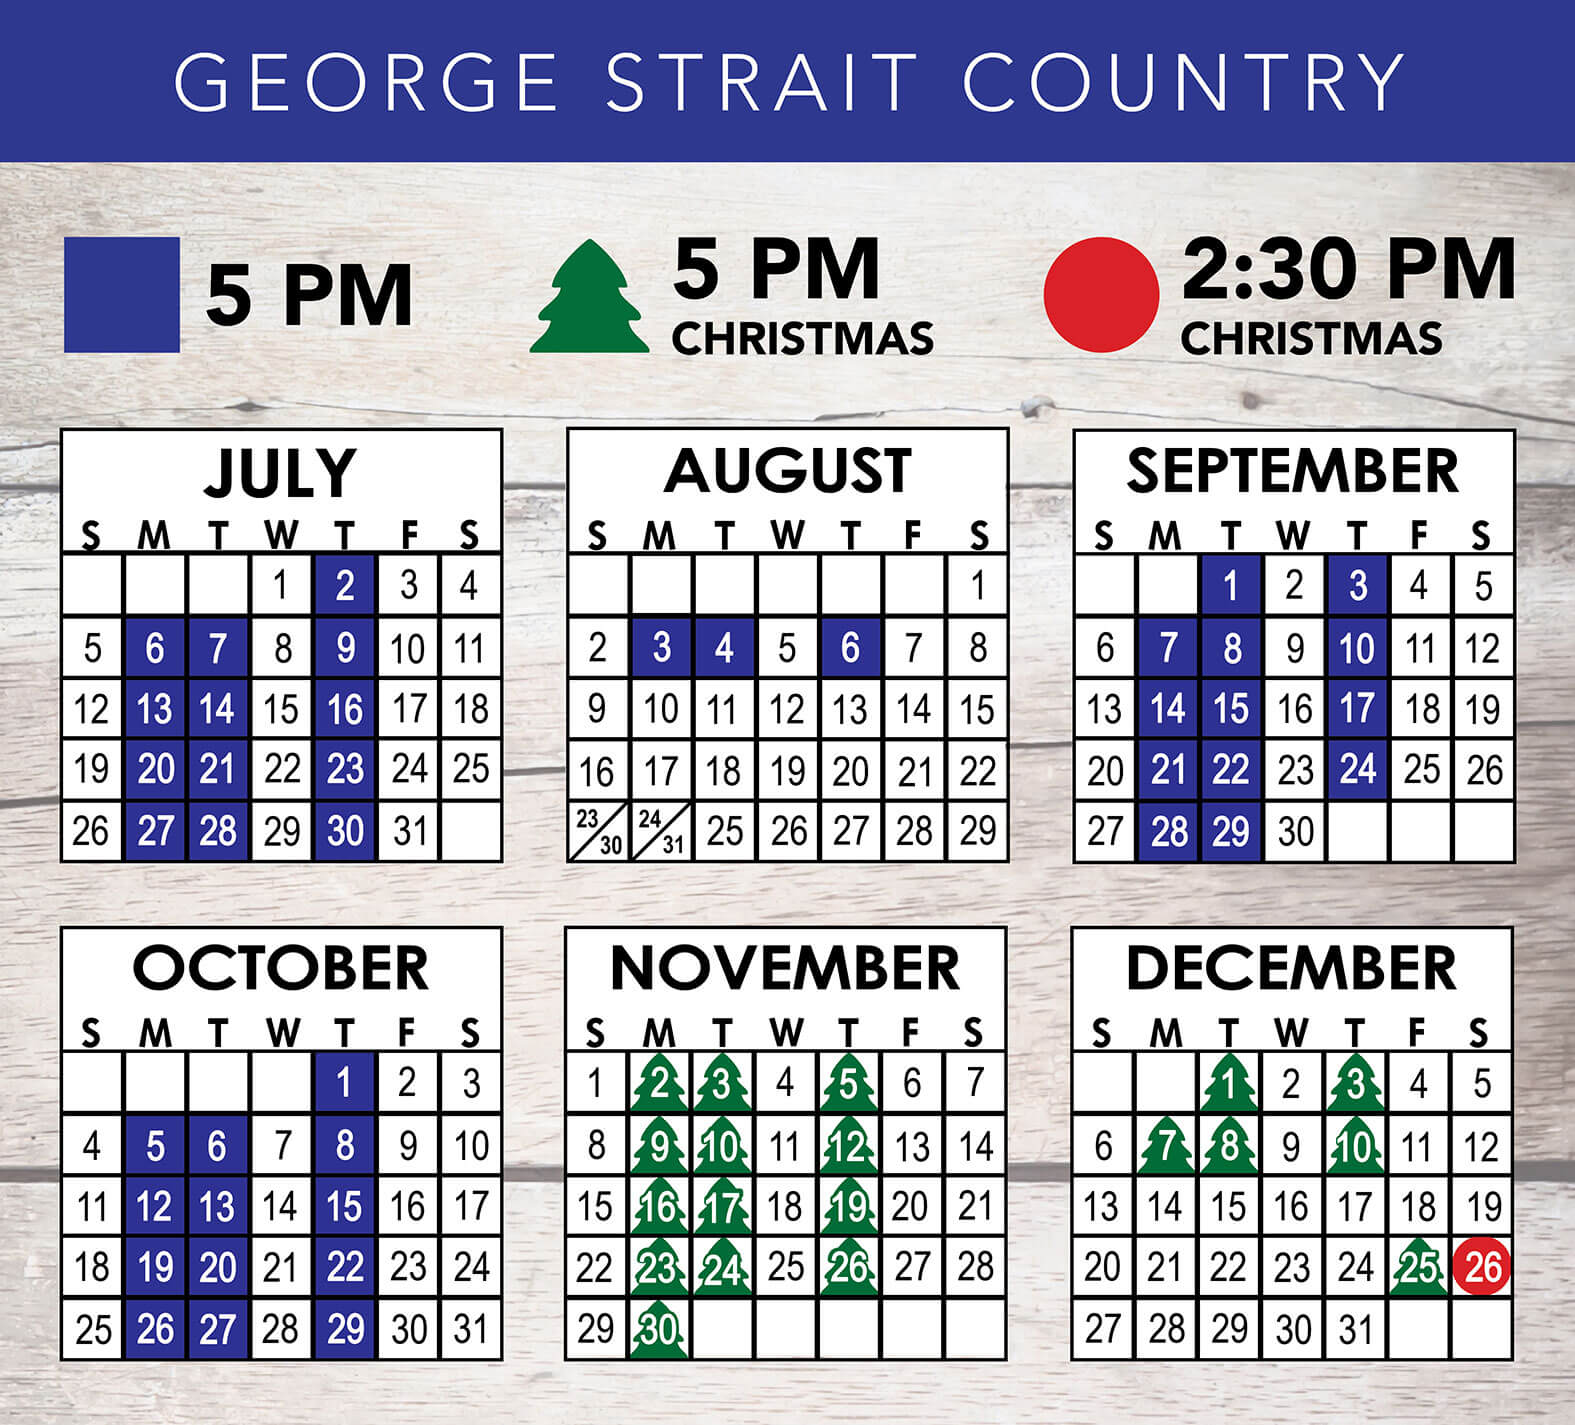 George Strait Country 2020 Schedule